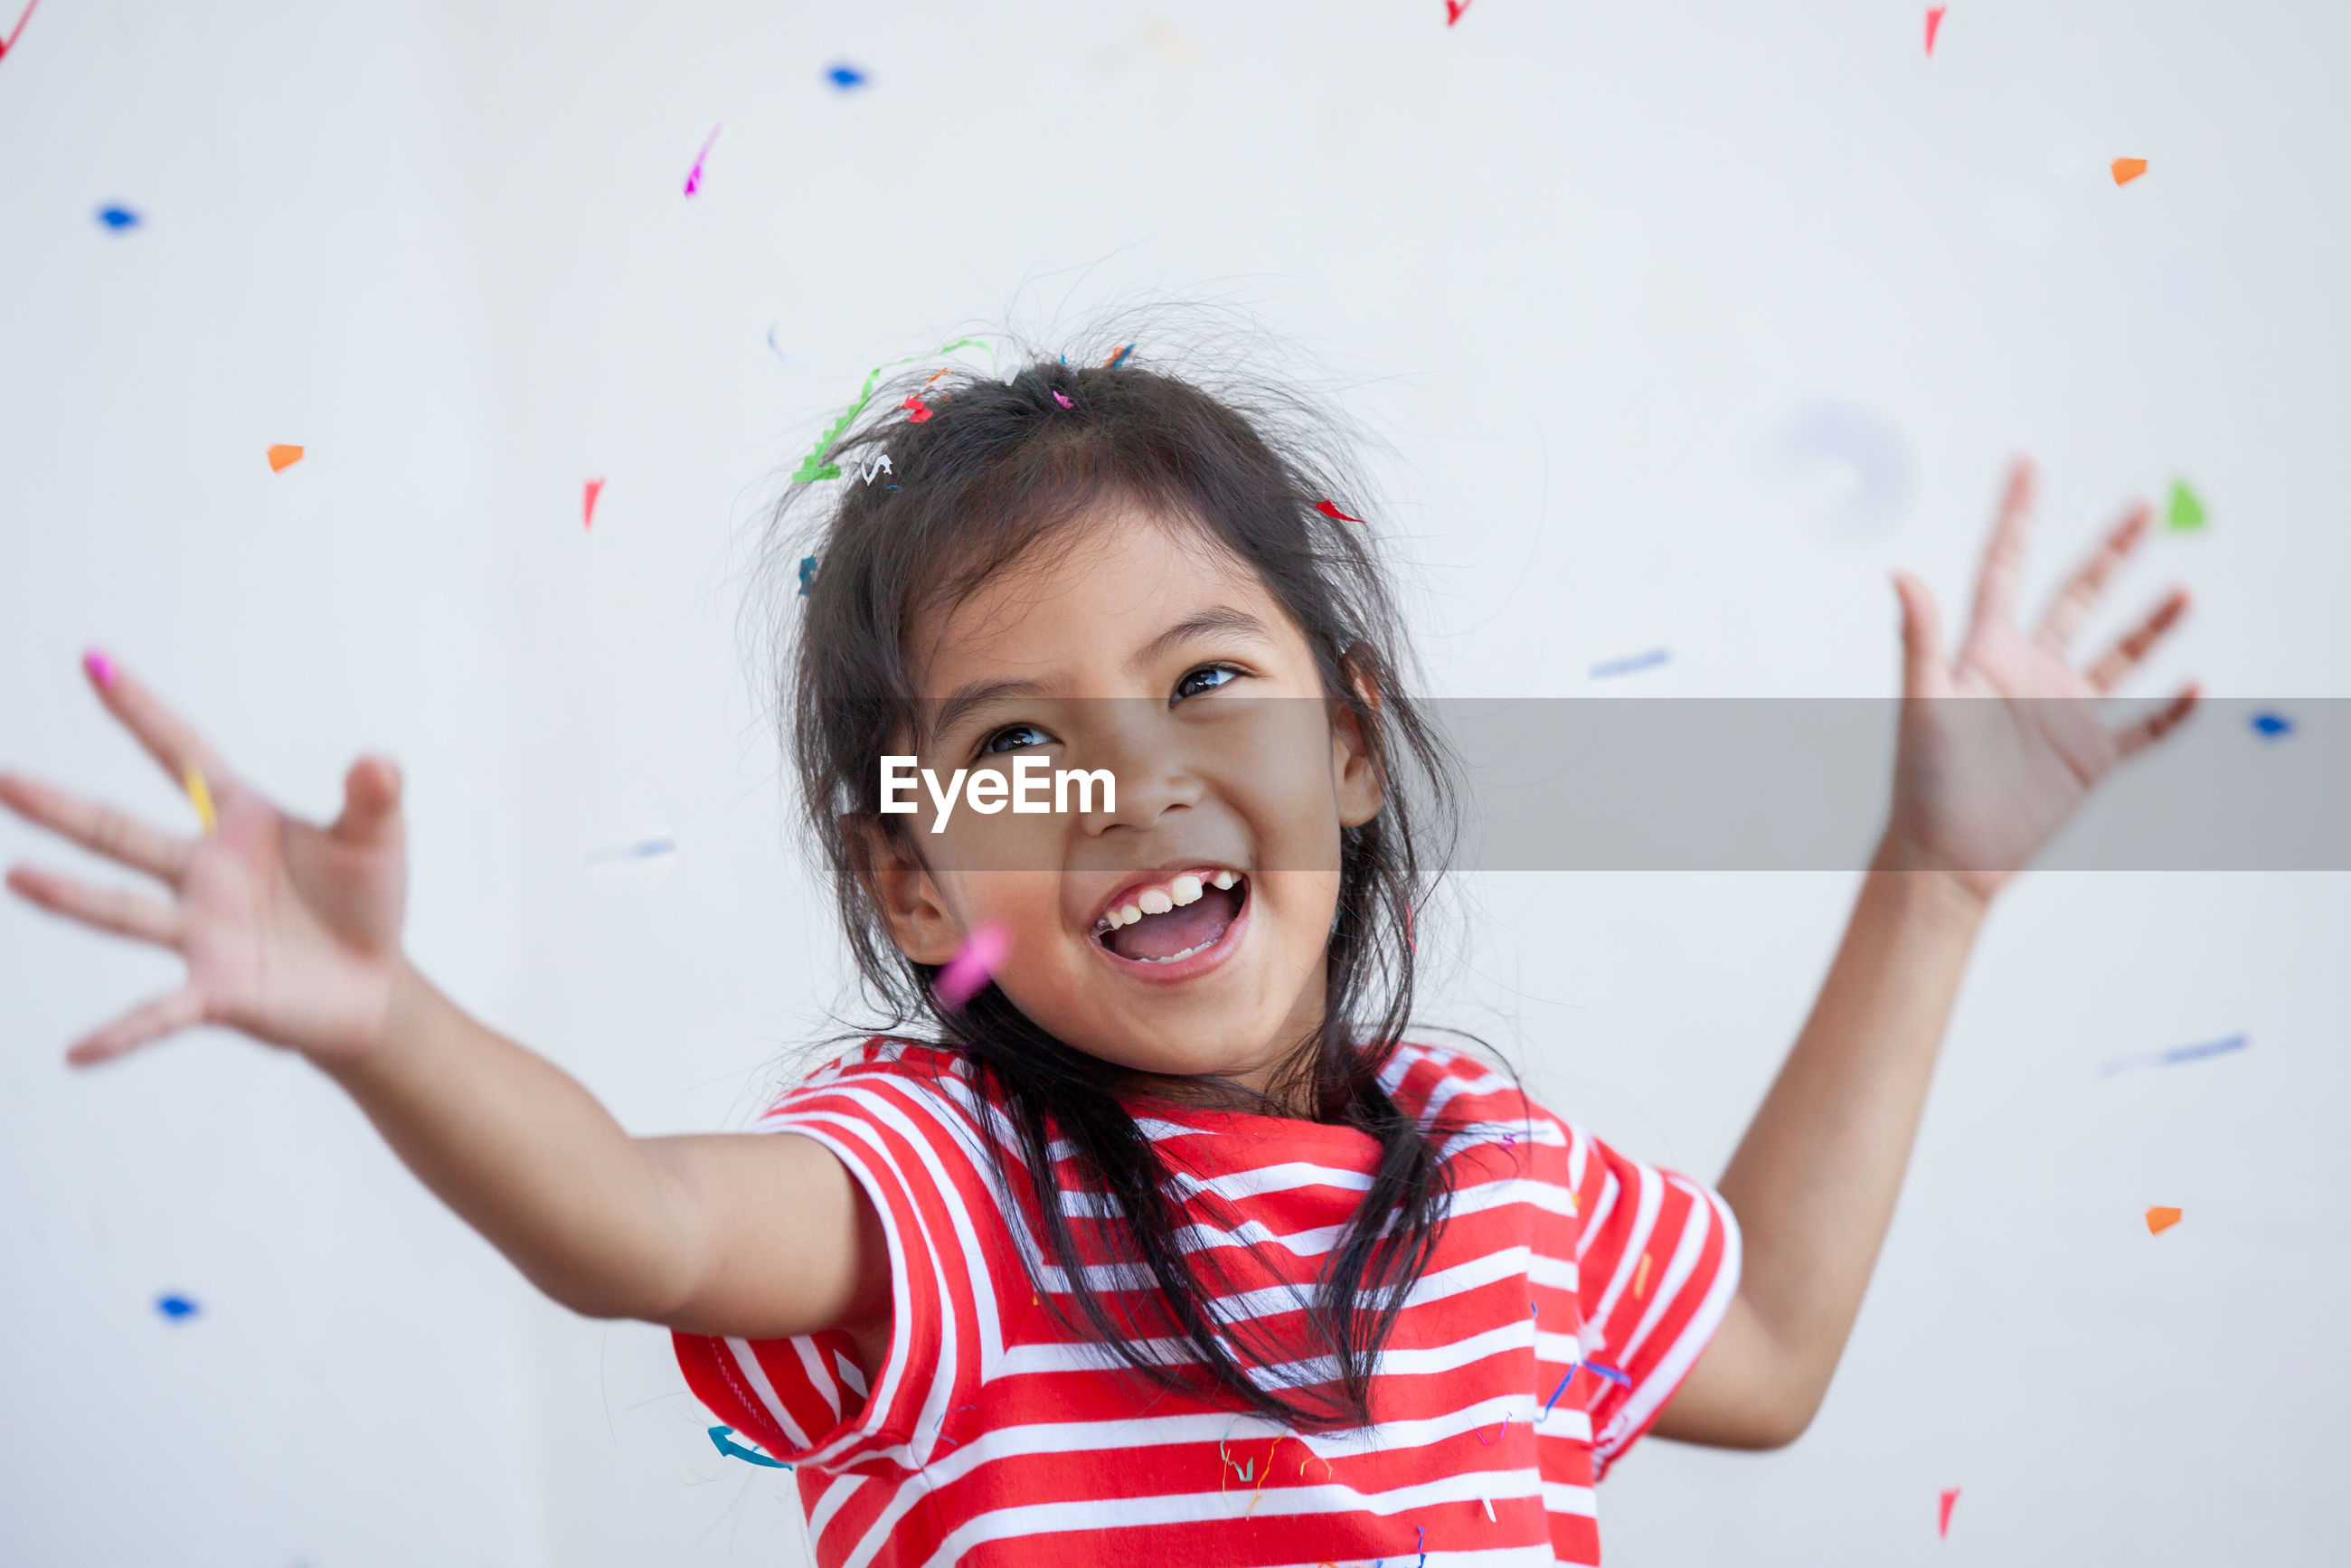 Cheerful girl with confetti against white background